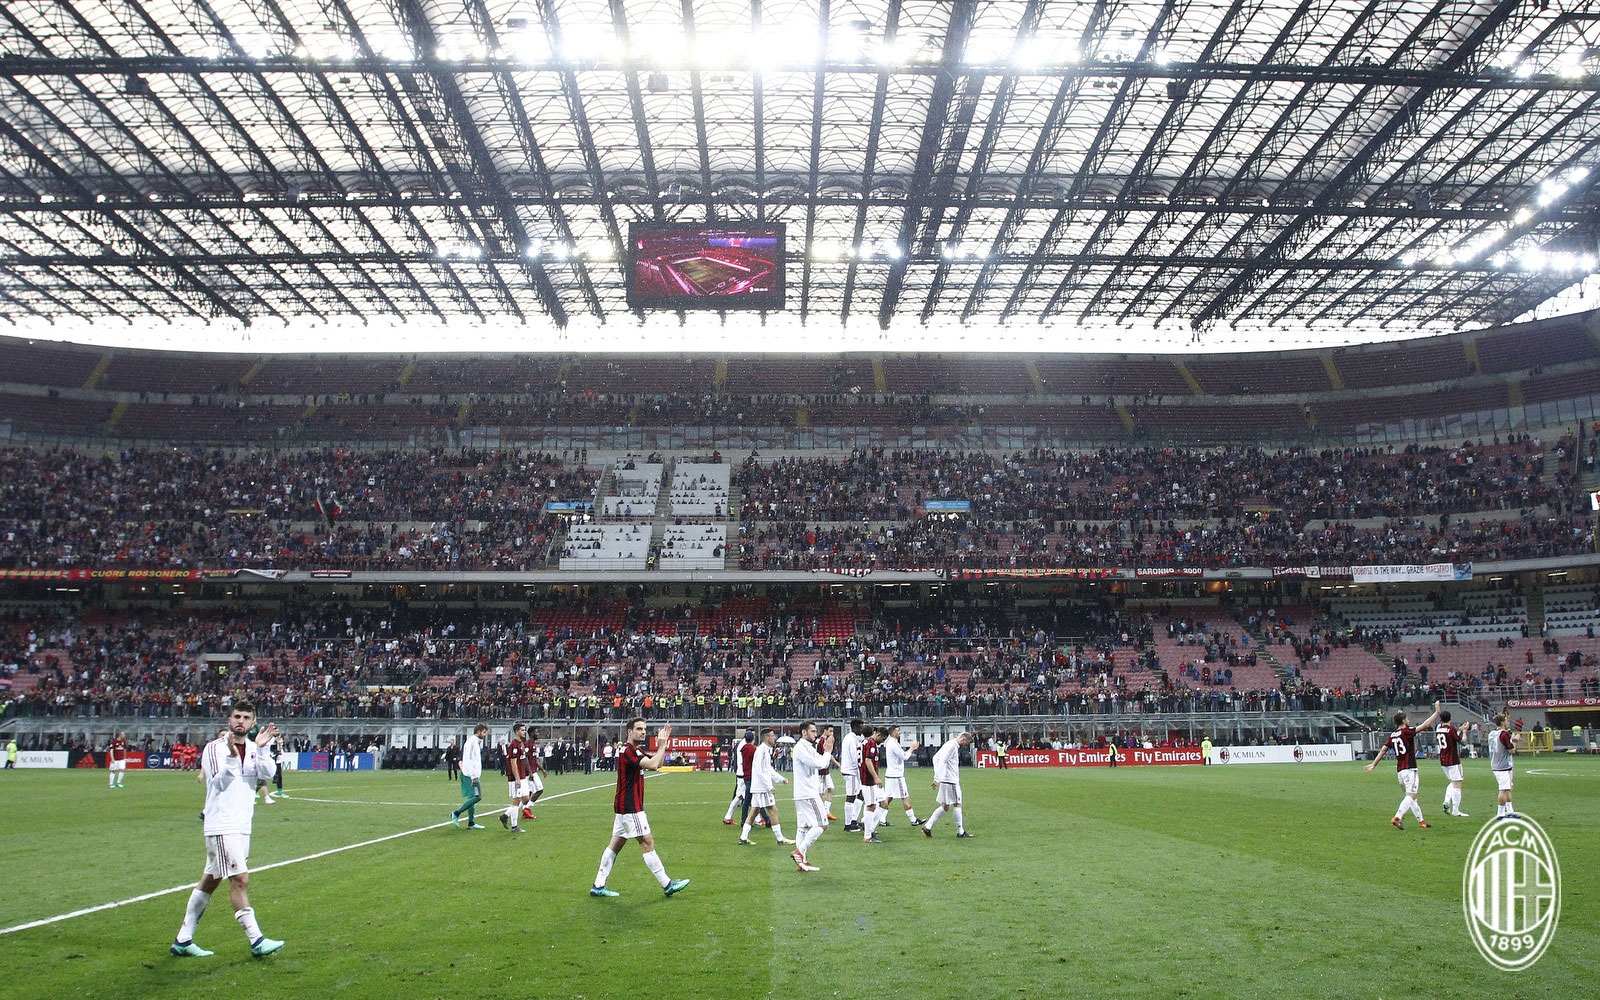 Milan players thanking the fans at the end of Milan-Fiorentina at Stadio San Siro on May 20, 2018. (@acmilan.com)